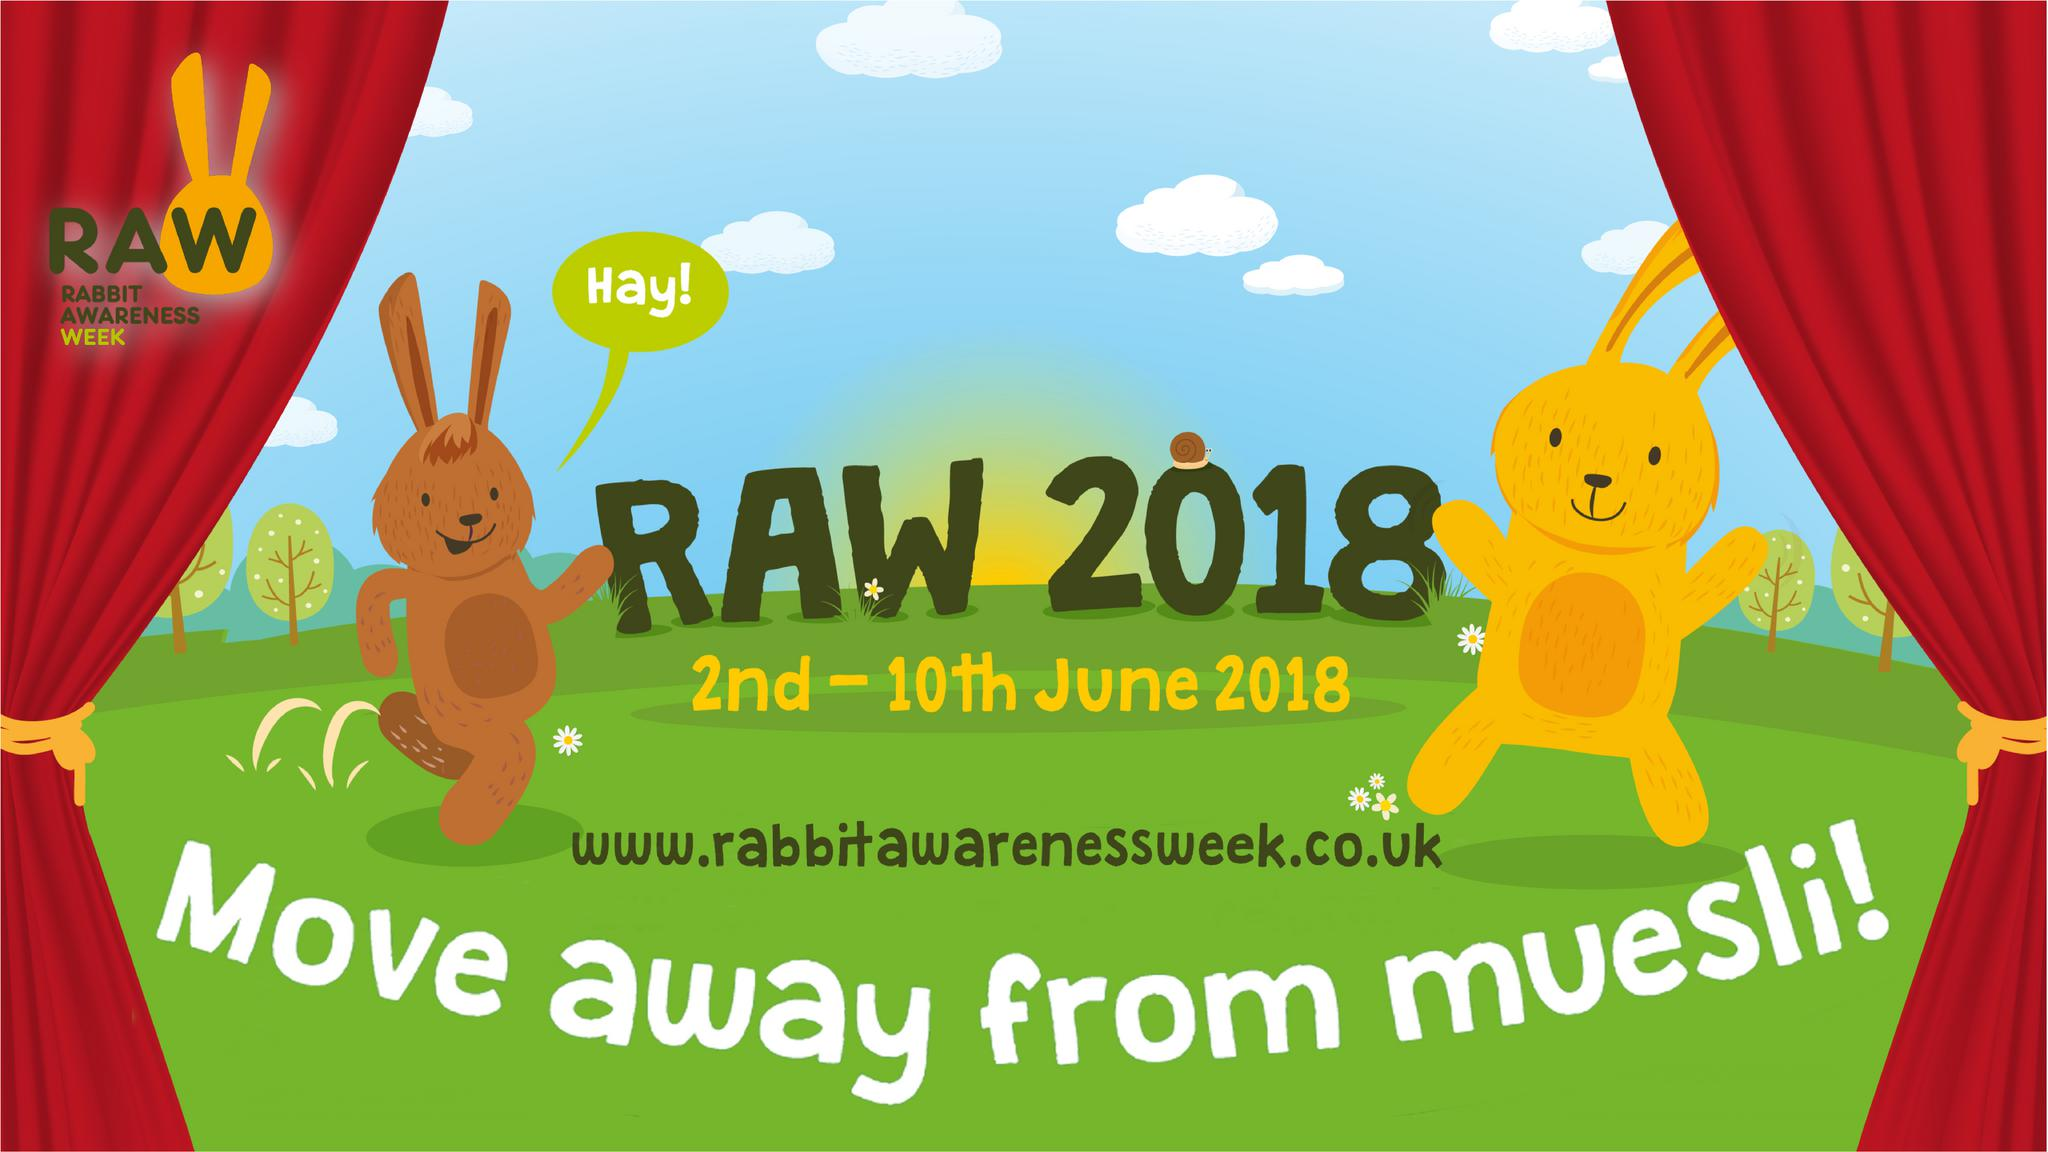 Rabbit Awareness Week 2018 - Guest Post